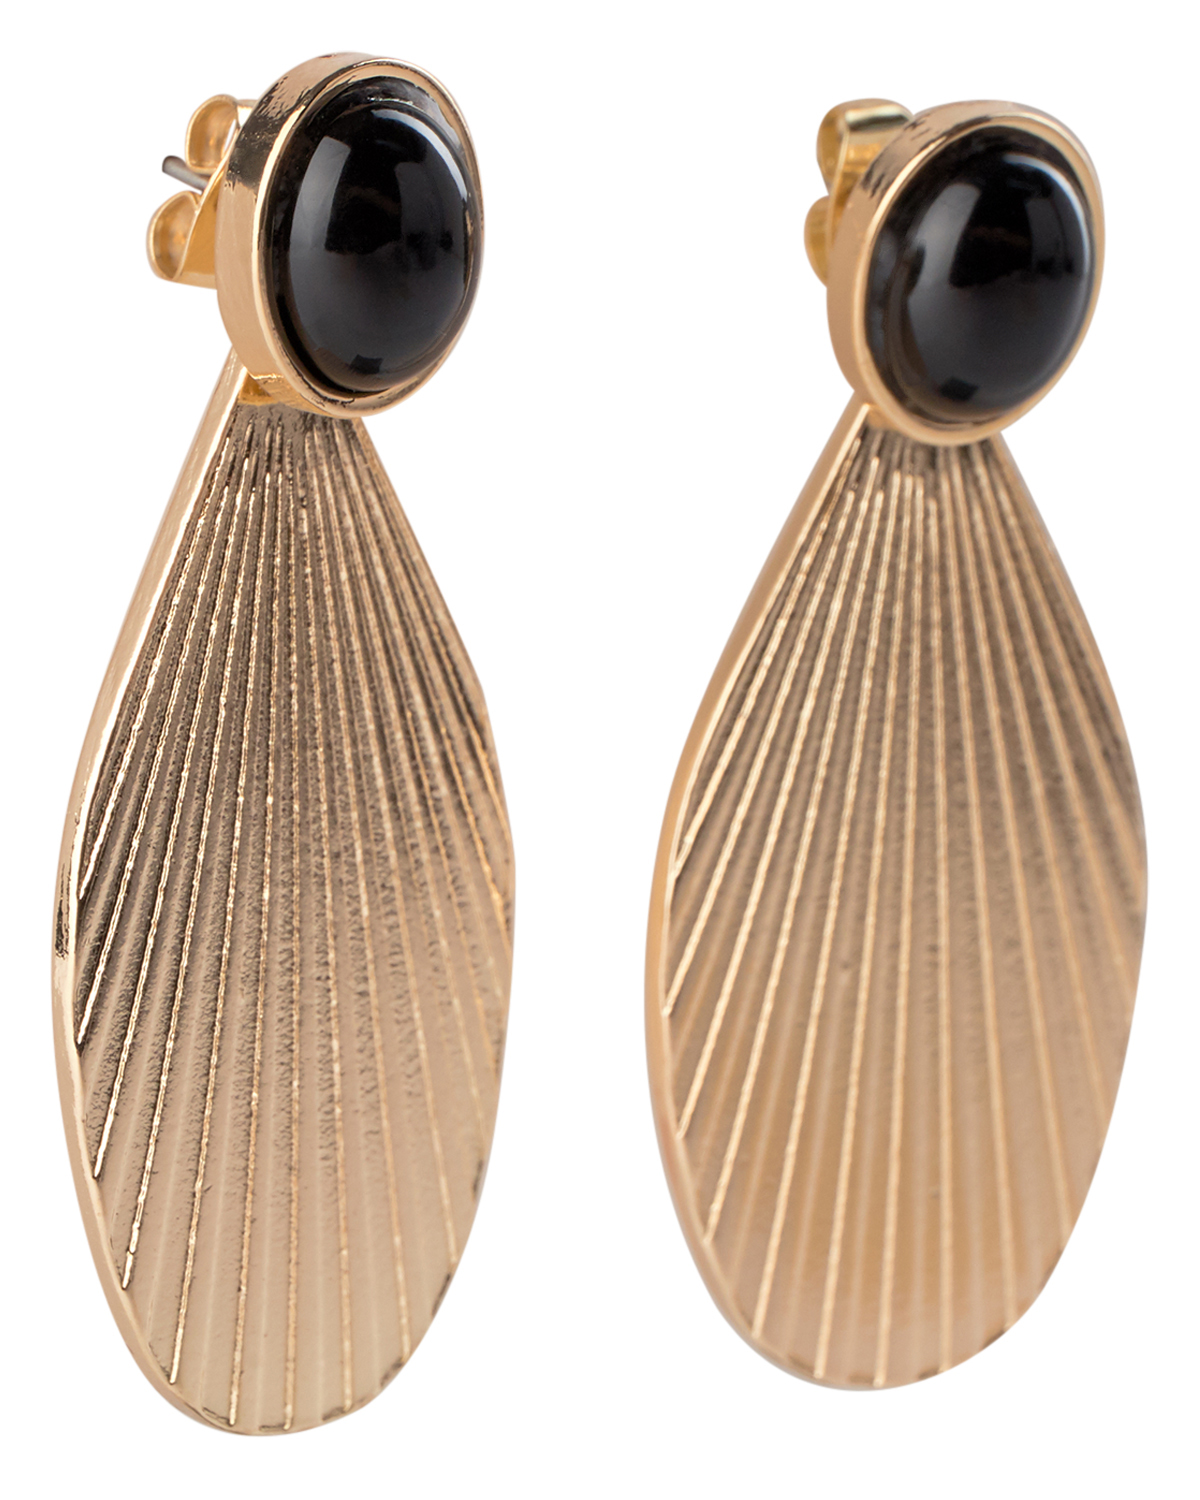 Nümph NuJelwa earrings, gold